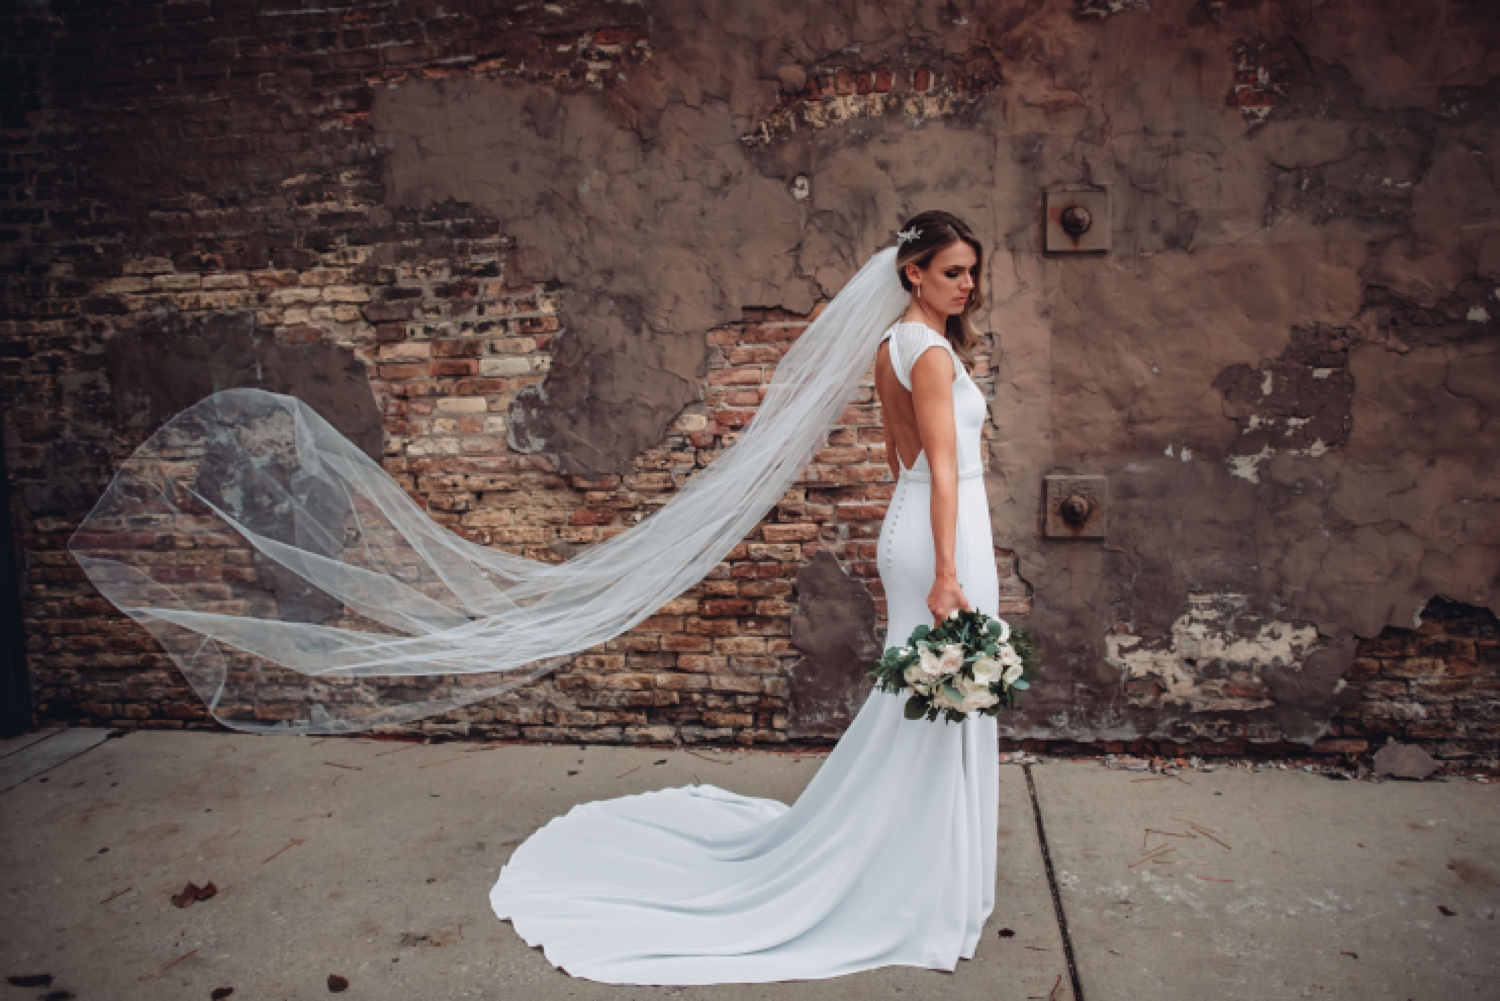 Artifact Events Fall Chicago Wedding - The Adamkovi bride and groom portraits, chicago alley, flying veil